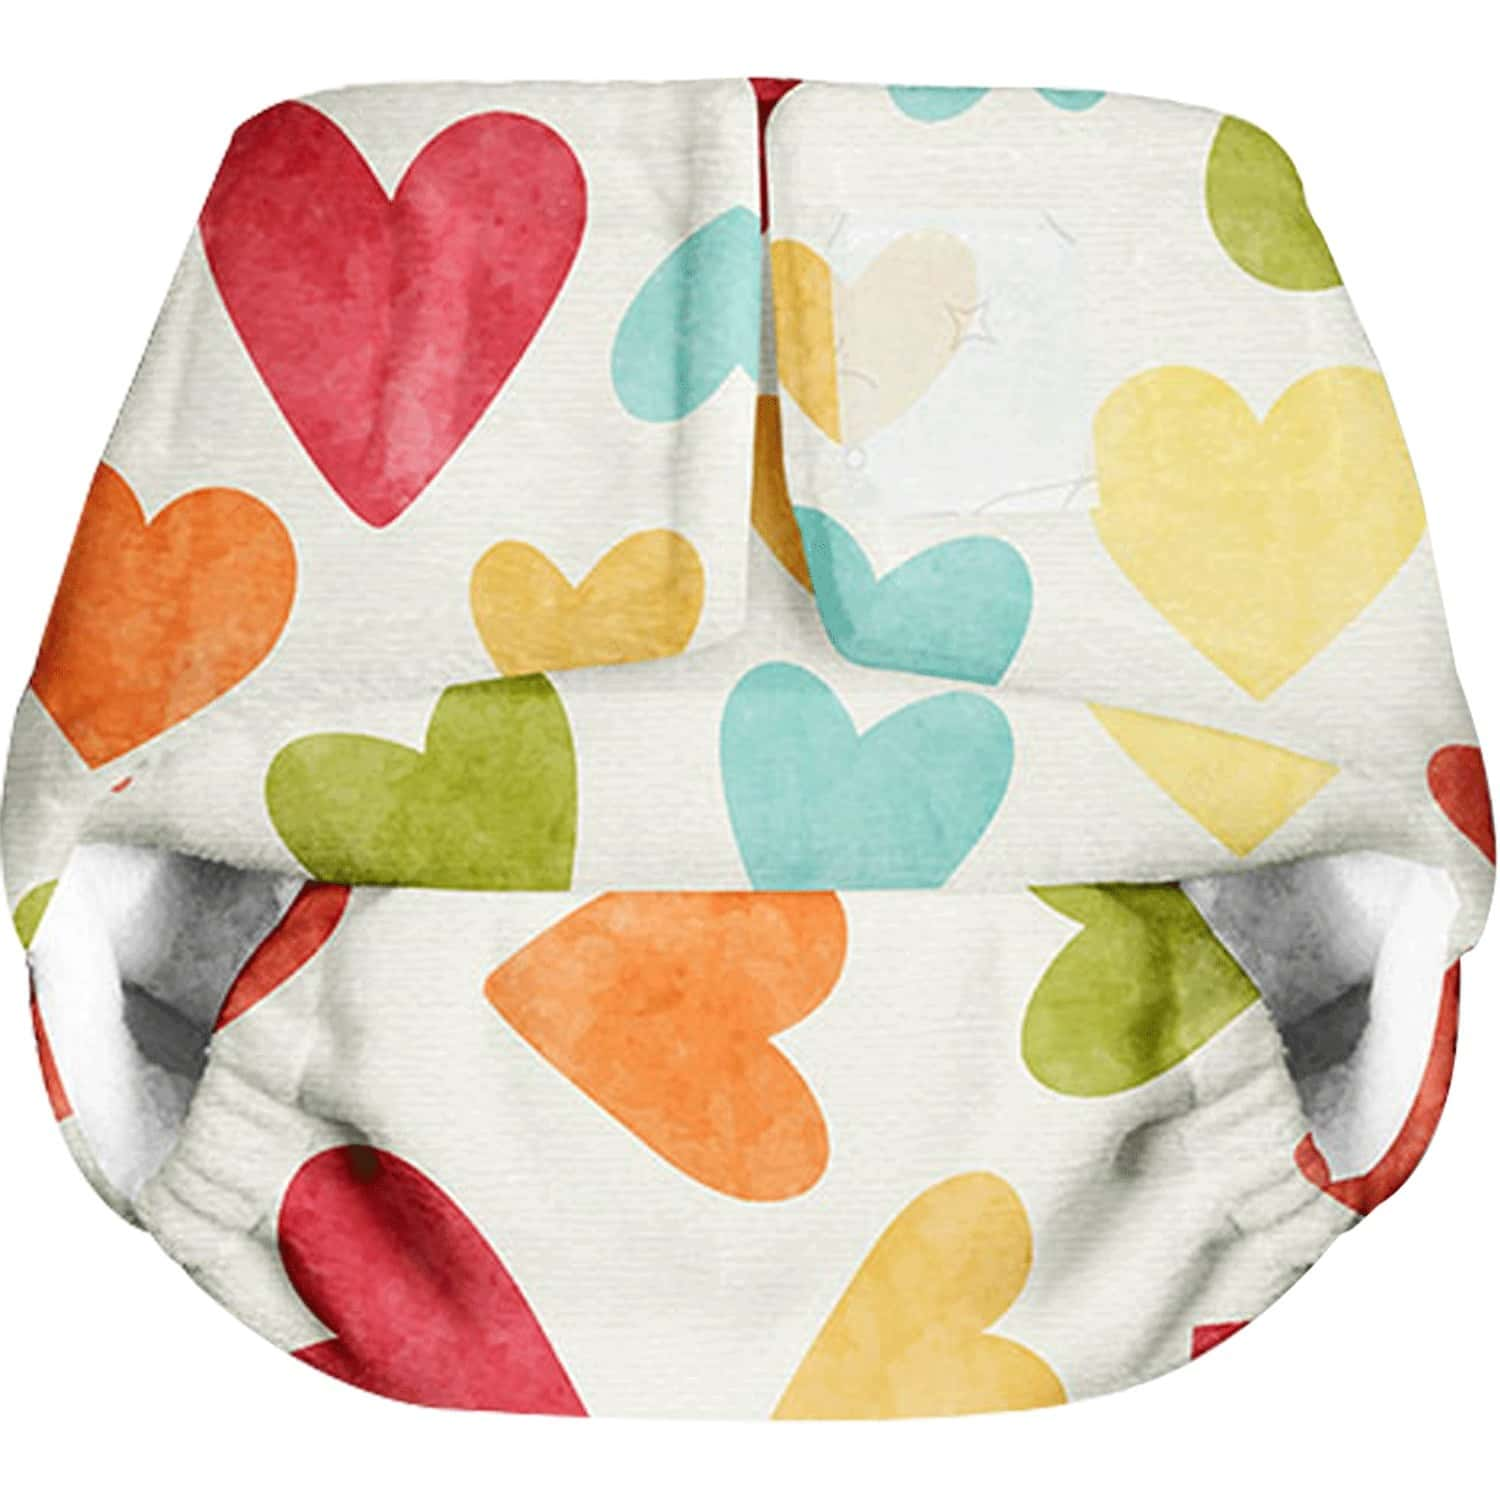 Superbottoms Newborn Uno Reusable Cloth Diaper With Dry Feel Pad 0-6 Months - Baby Hearts